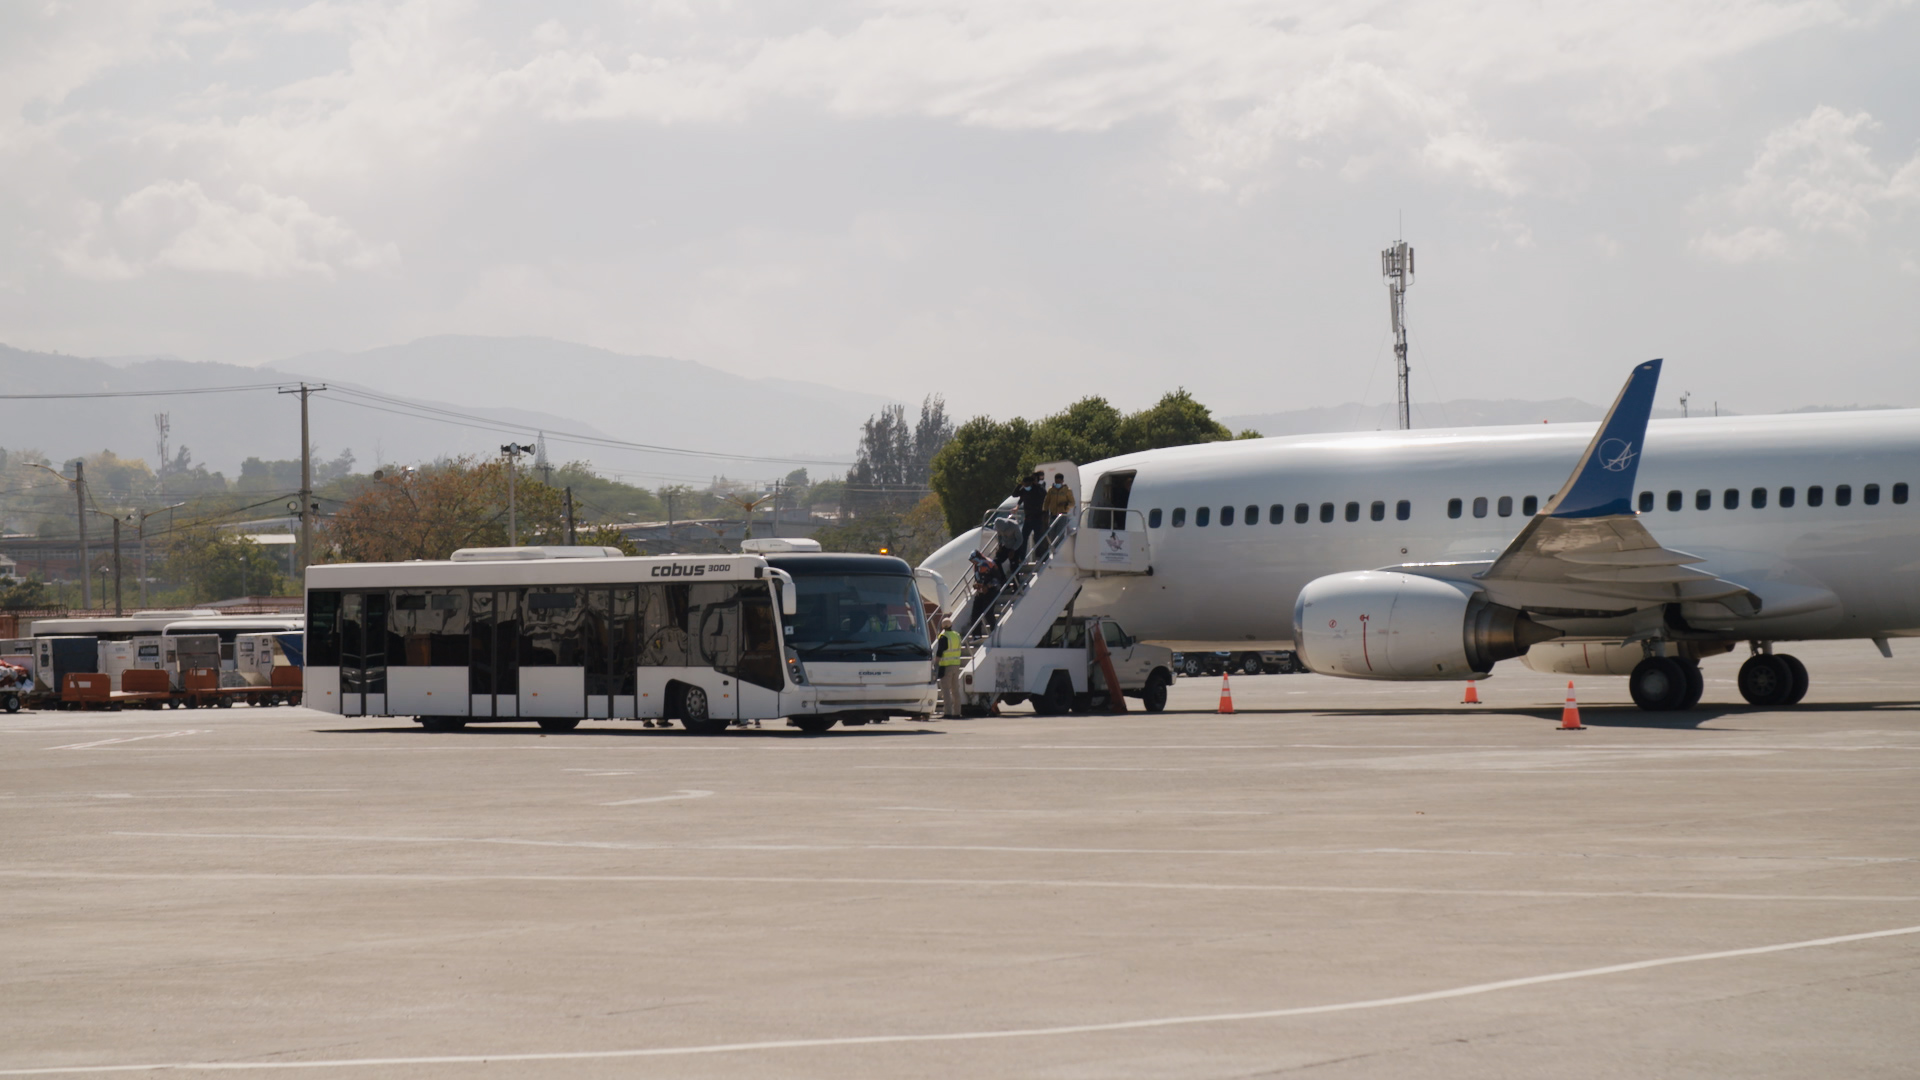 A flight filled with asylum-seekers lands in Port-au-Prince Haiti on Feb. 12, 2021. (Photo: Samuel Stonefield/VICE News)